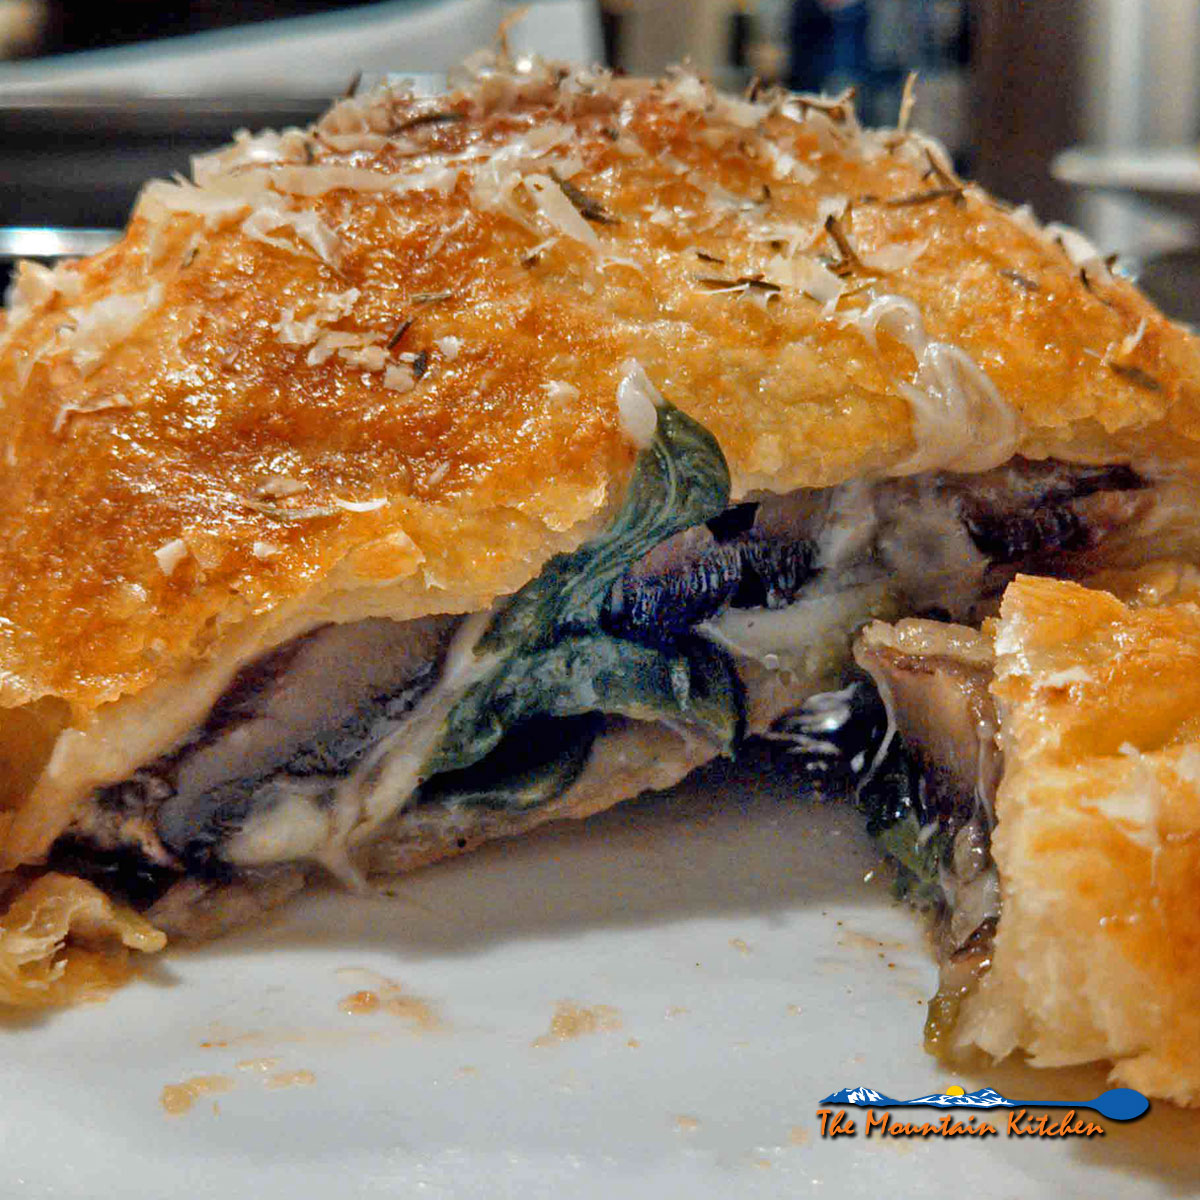 This recipe is a spin-off the classic Beef Wellington recipe, this vegetarian version uses Portobello mushroom caps, spinach and cheese stuffed inside of a flaky pastry crust. | TheMountainKitchen.com